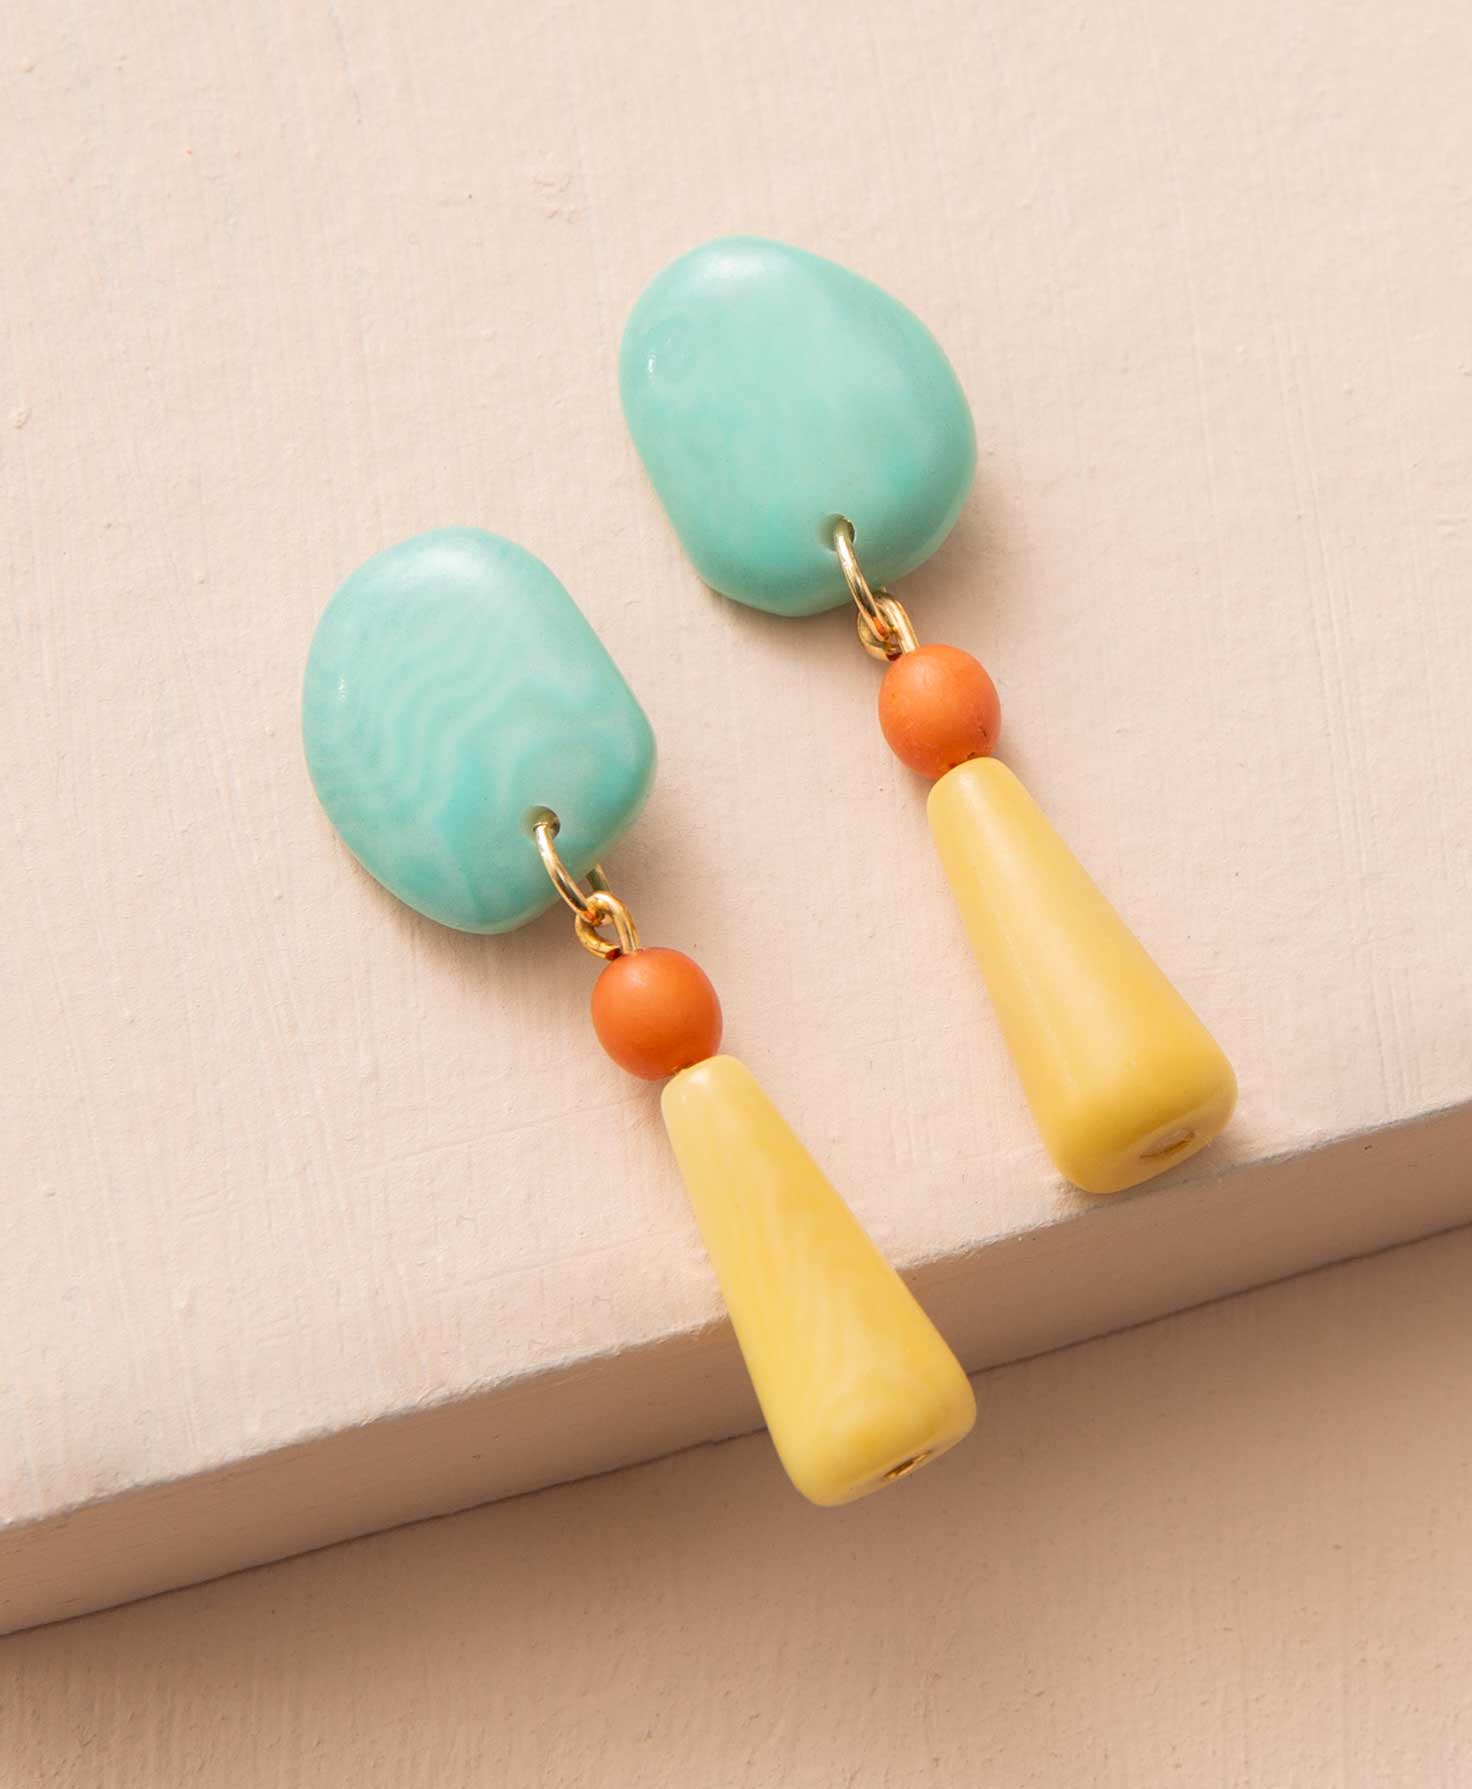 The Delphin Drop Earrings lay on a peach background. They are stud-style earrings with dangling pieces hanging down. The pieces are made of polished tagua seed that has been dyed. Affixed to the stud is a round aqua tagua piece with a natural, slightly irregular shape. There is a jump ring below this that attaches to a small, bright orange tagua bead. Below this is a long yellow tagua piece that starts narrow and widens slightly toward the bottom.